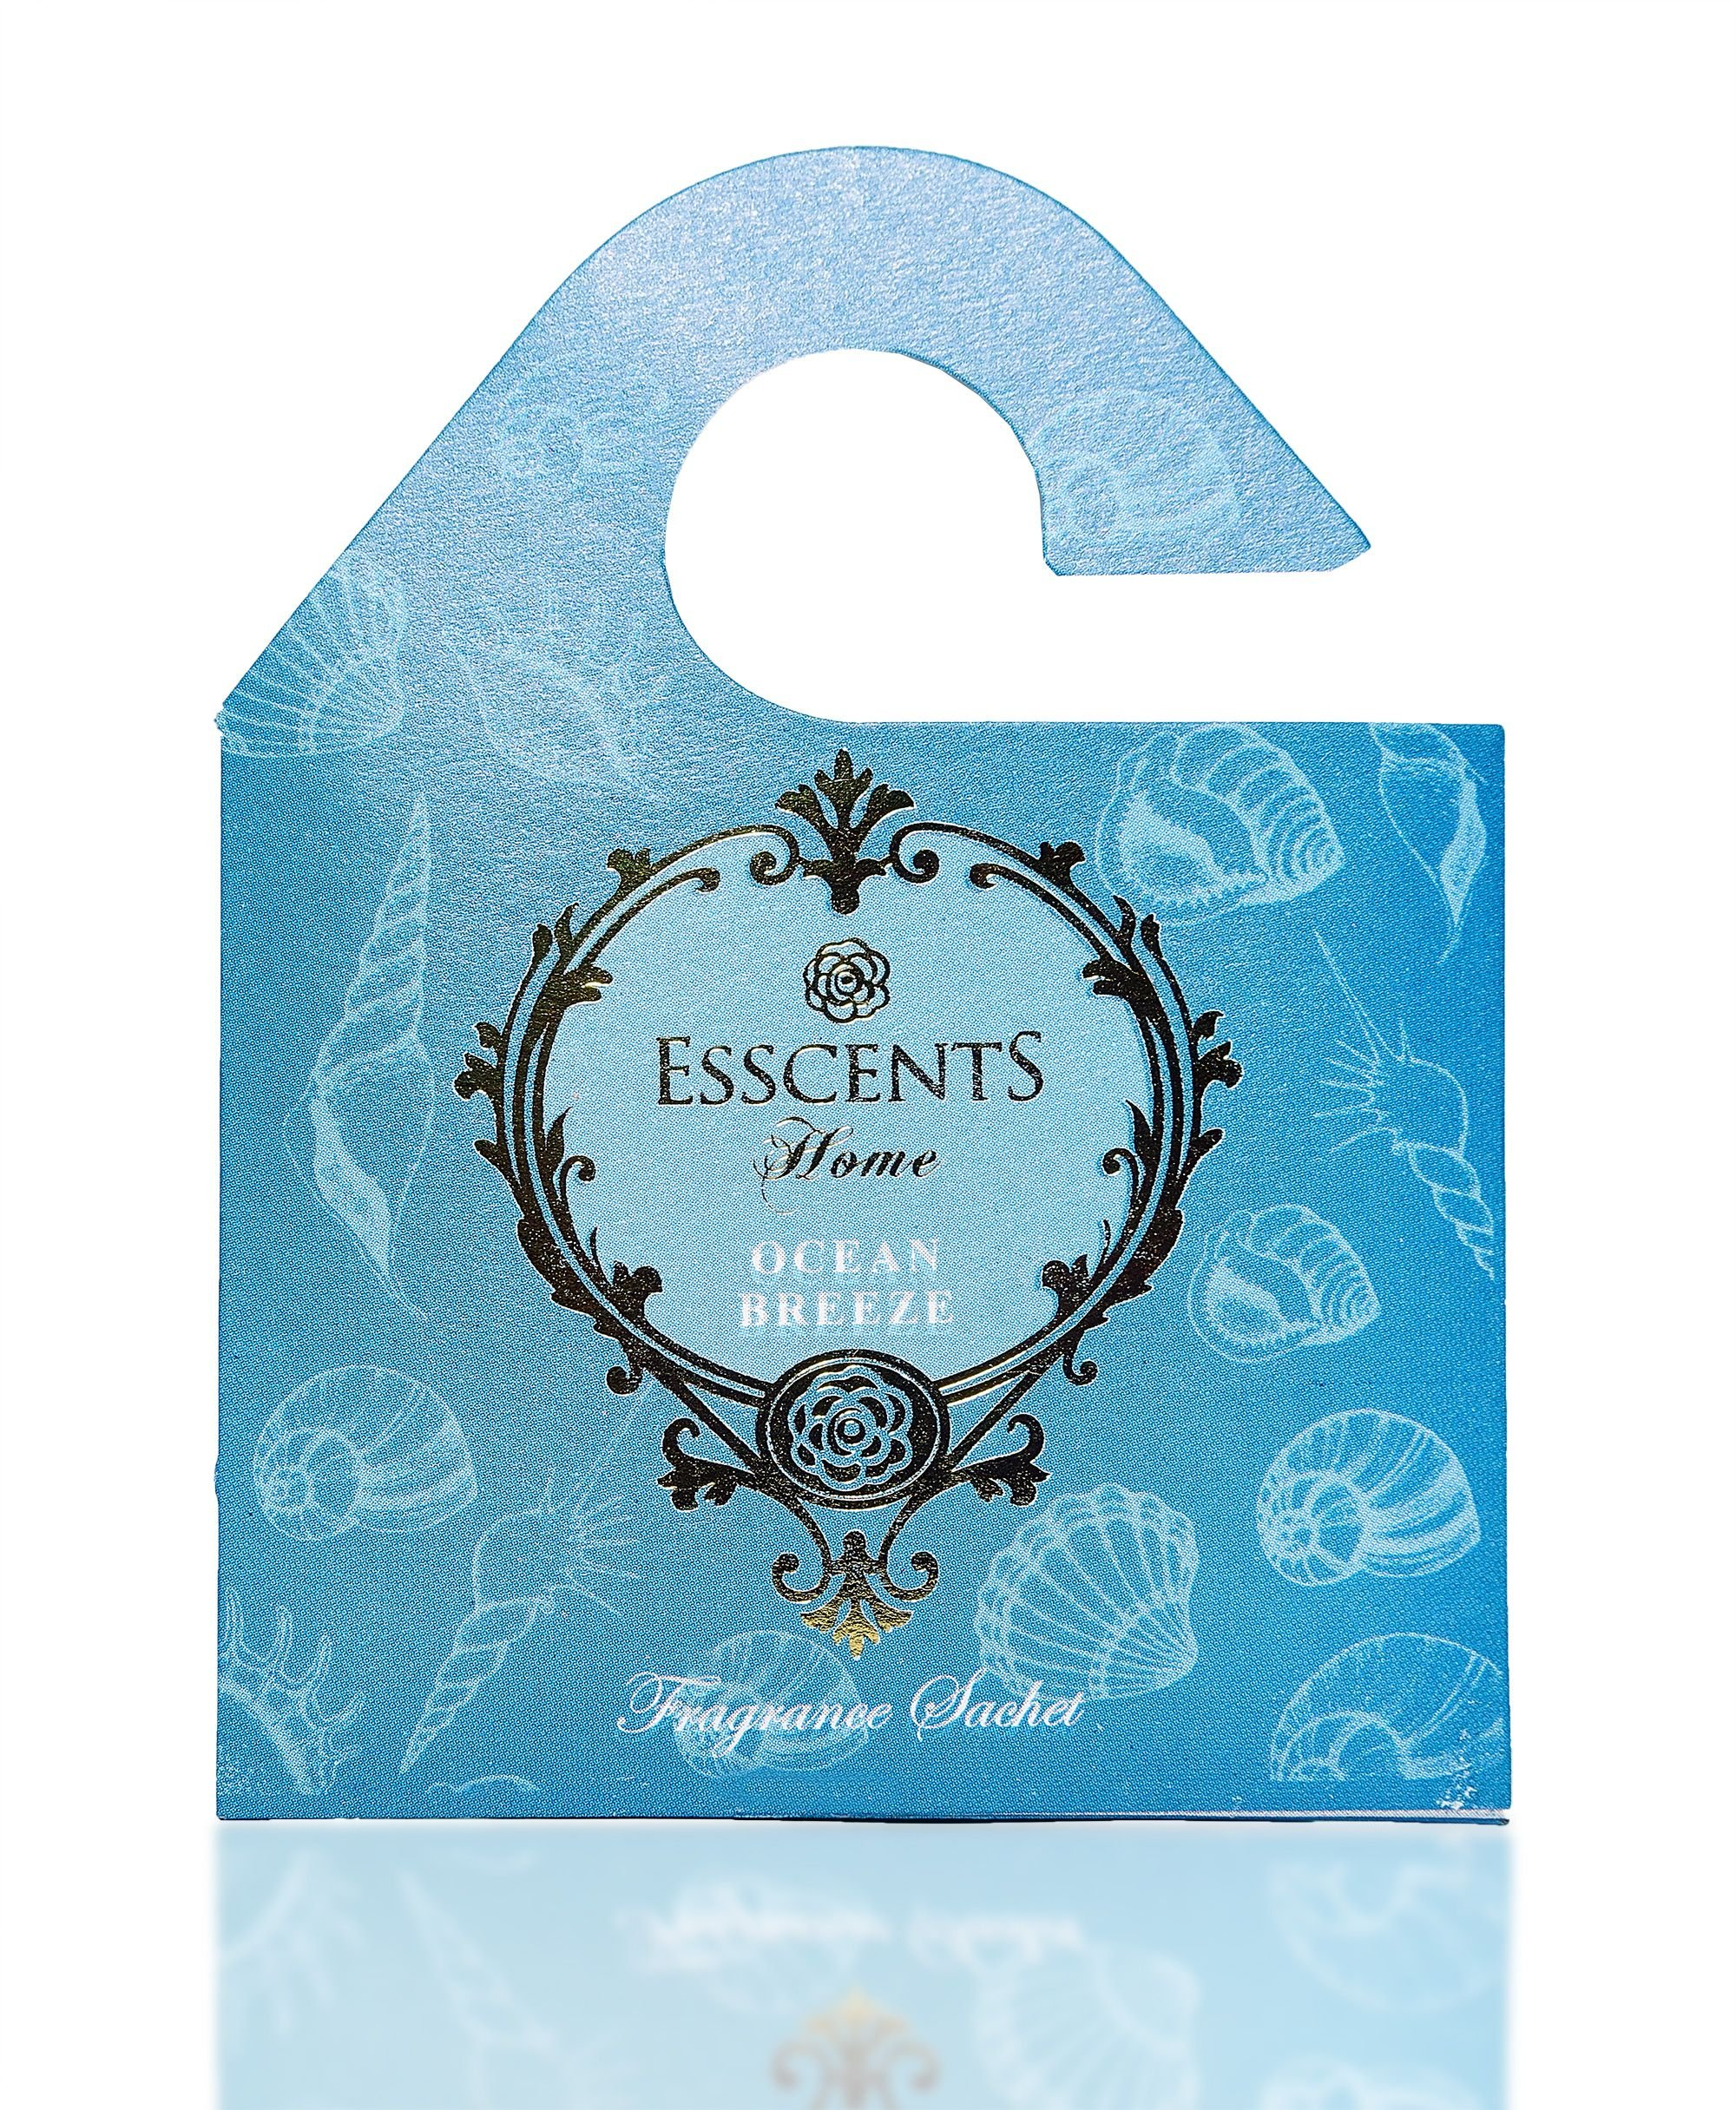 Esscents Home Set of 6 Wooden Board Sachets - Naturally Scented and Long Lasting - Jasmine, Lavender, Floral, Ocean, Rose, Sandalwood (Ocean Breeze)